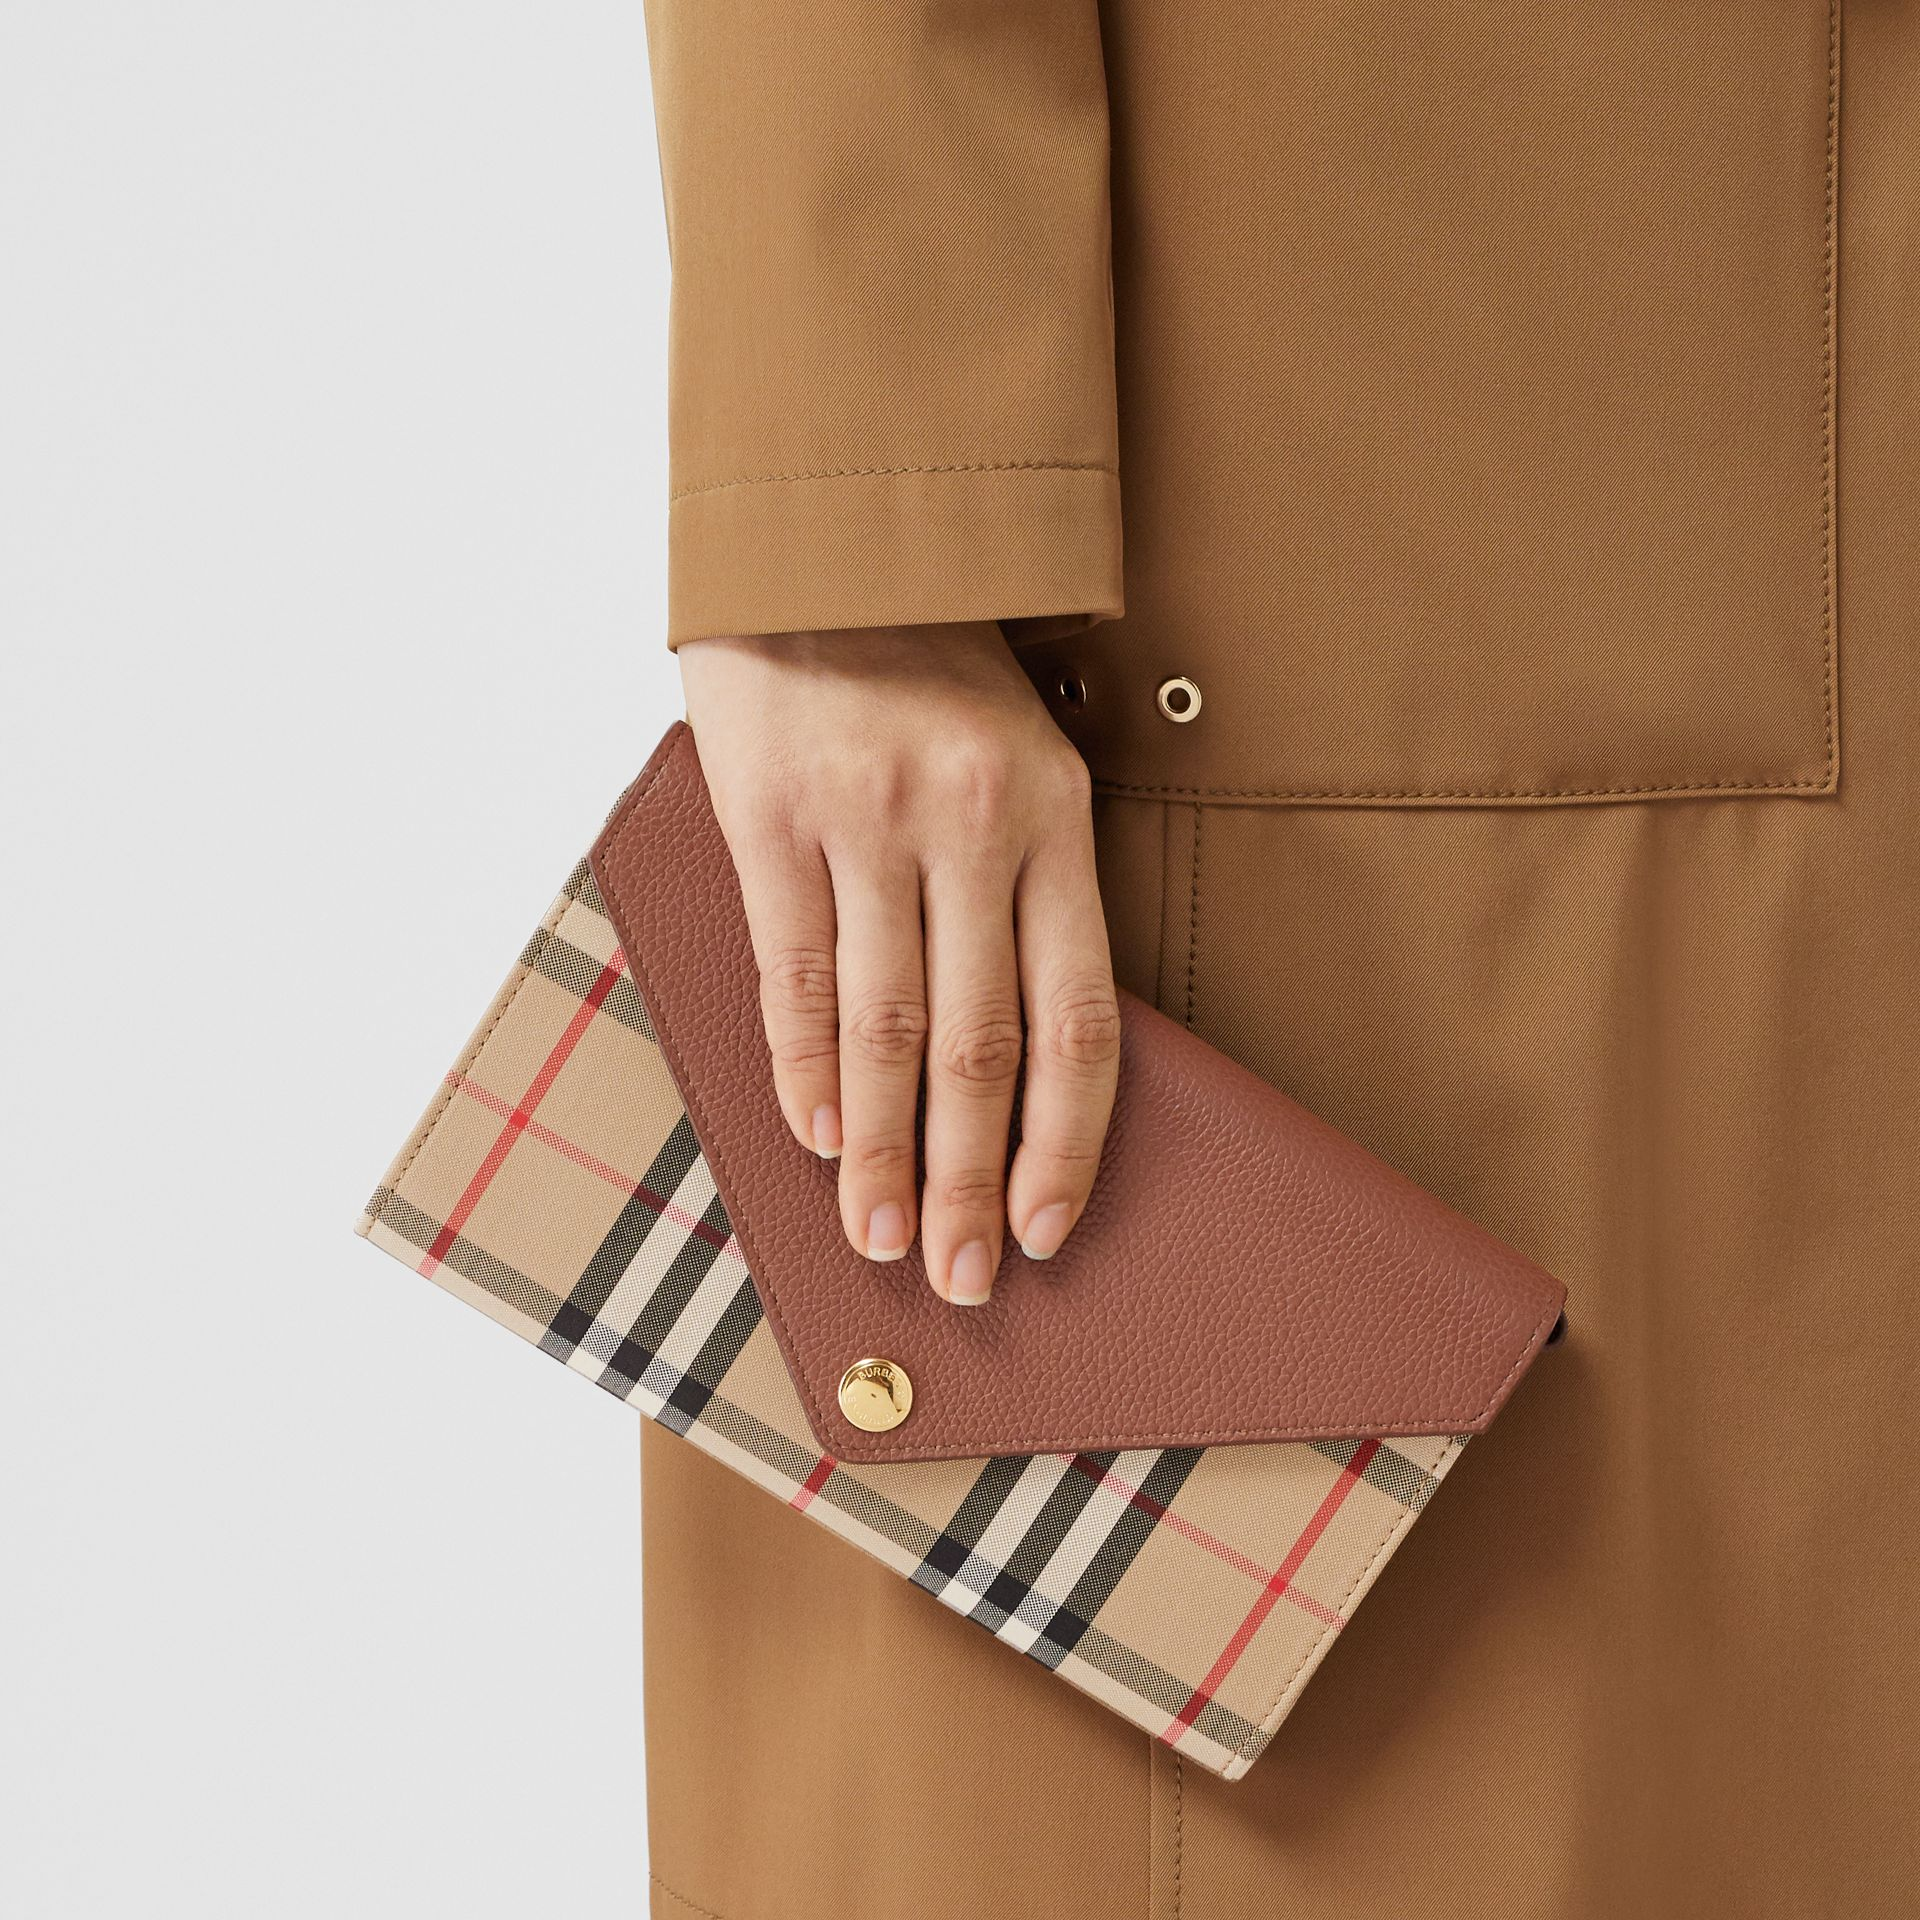 Vintage Check and Leather Wallet with Detachable Strap in Tan - Women | Burberry - gallery image 9